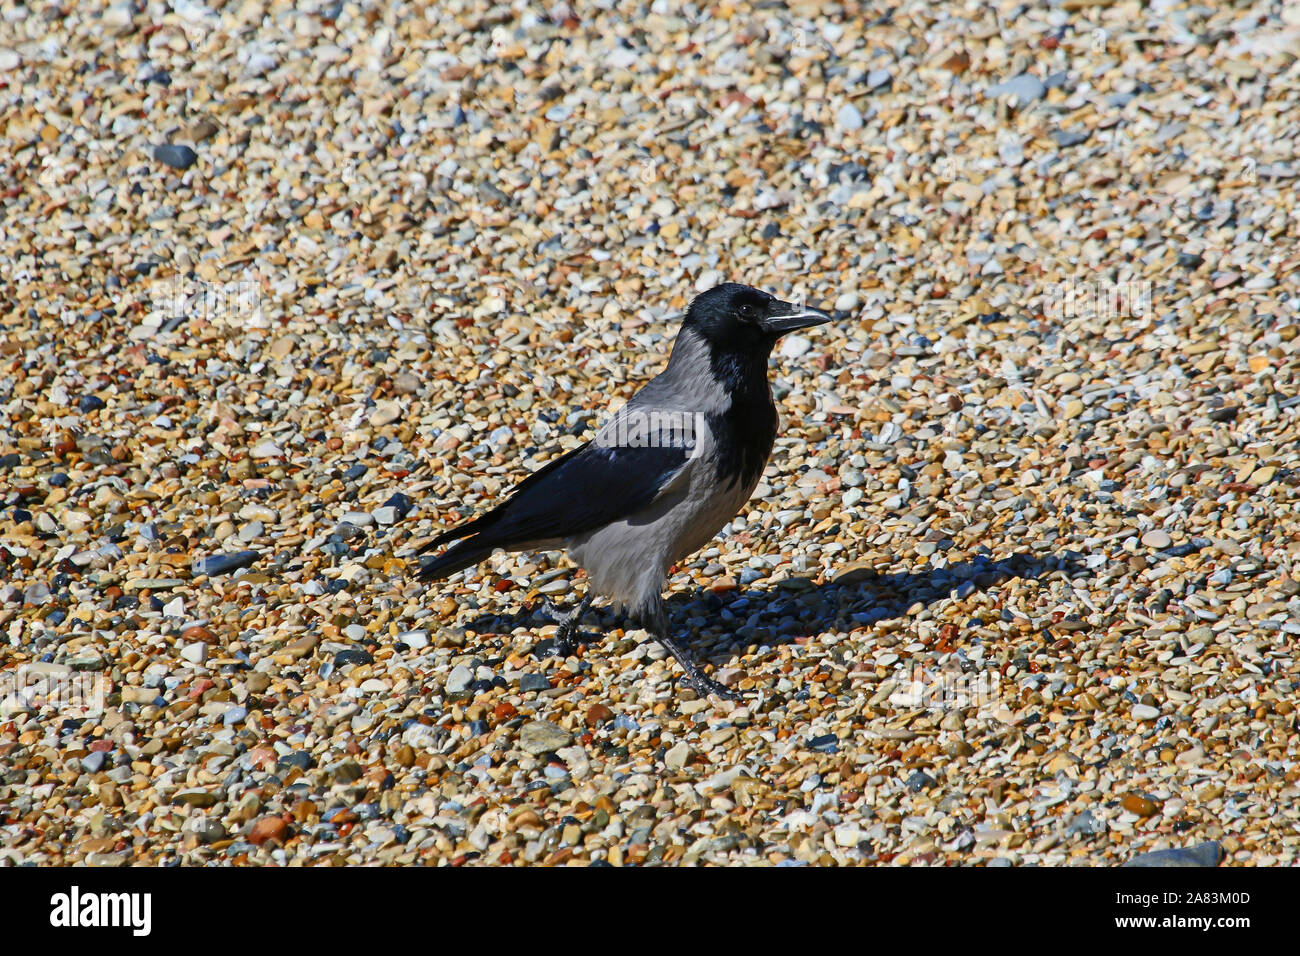 hooded crow hooded crow Latin corvus cornix in the family corvidae on the beach in early spring in Italy looking at the camera very intelligent birds Stock Photo